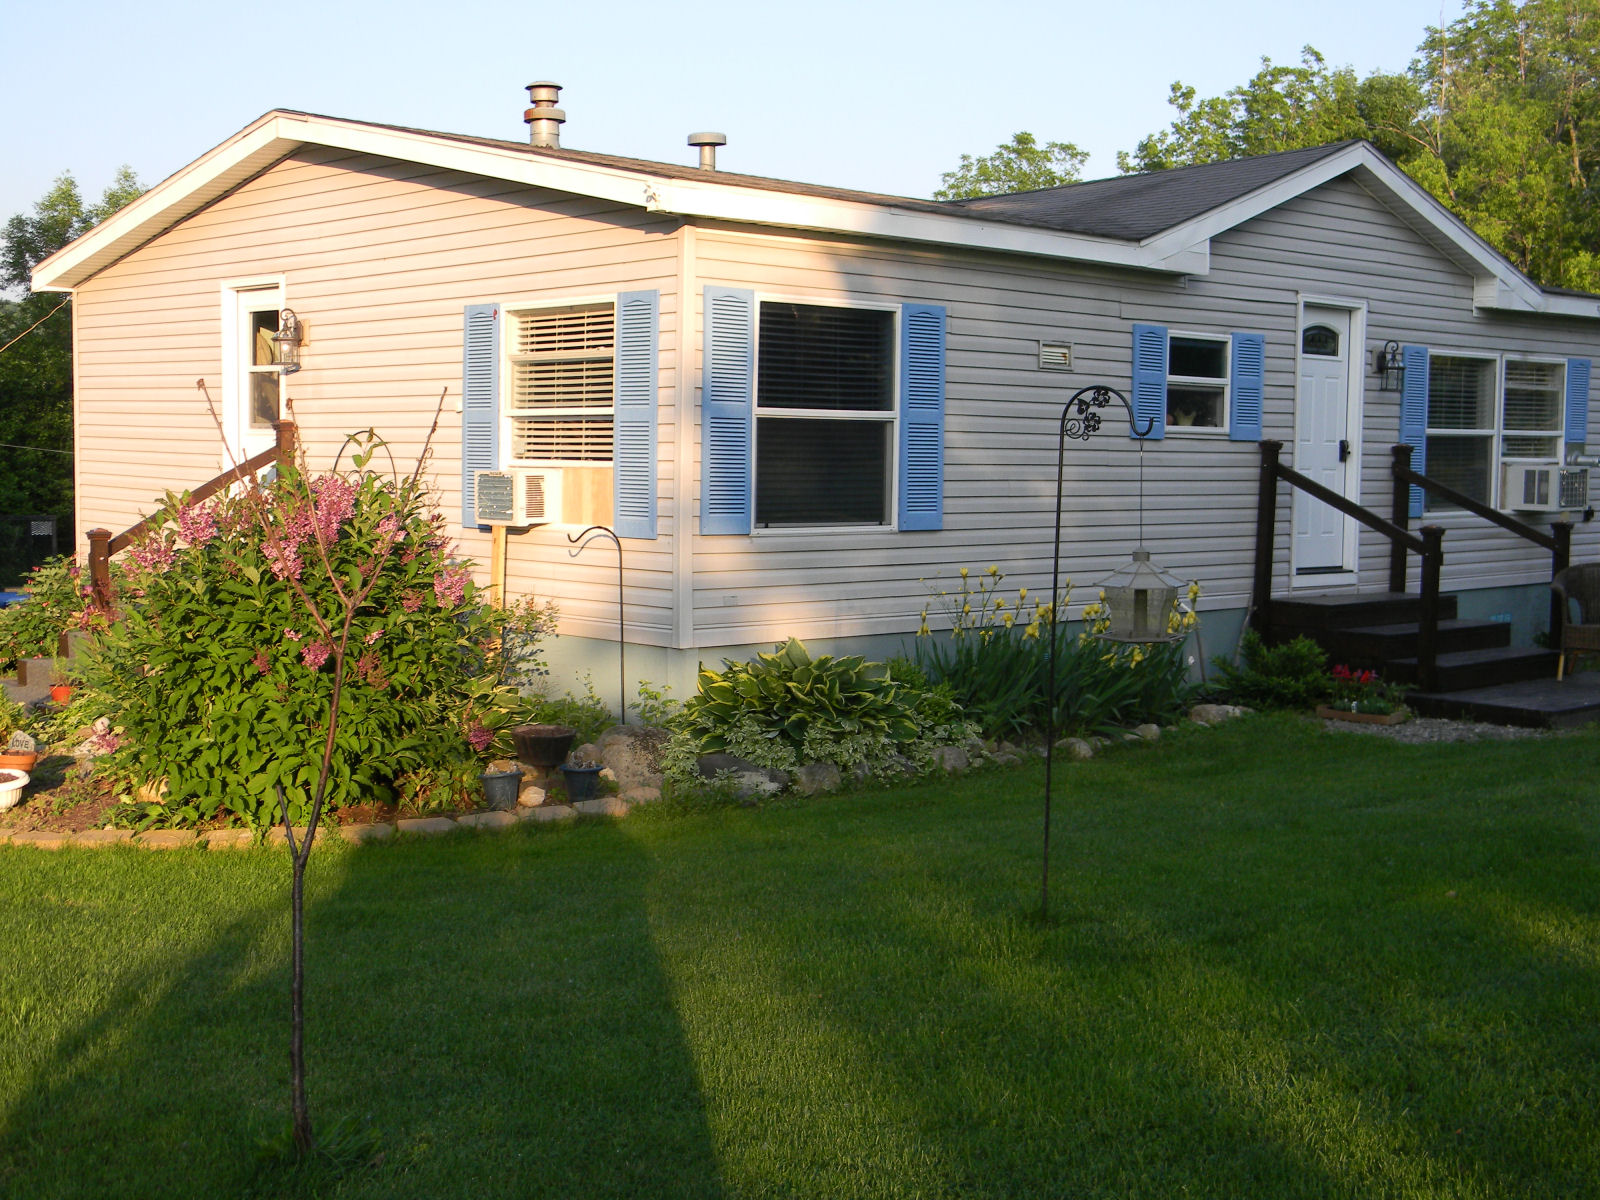 Landscaping Ideas For Landscaping Mobile Home